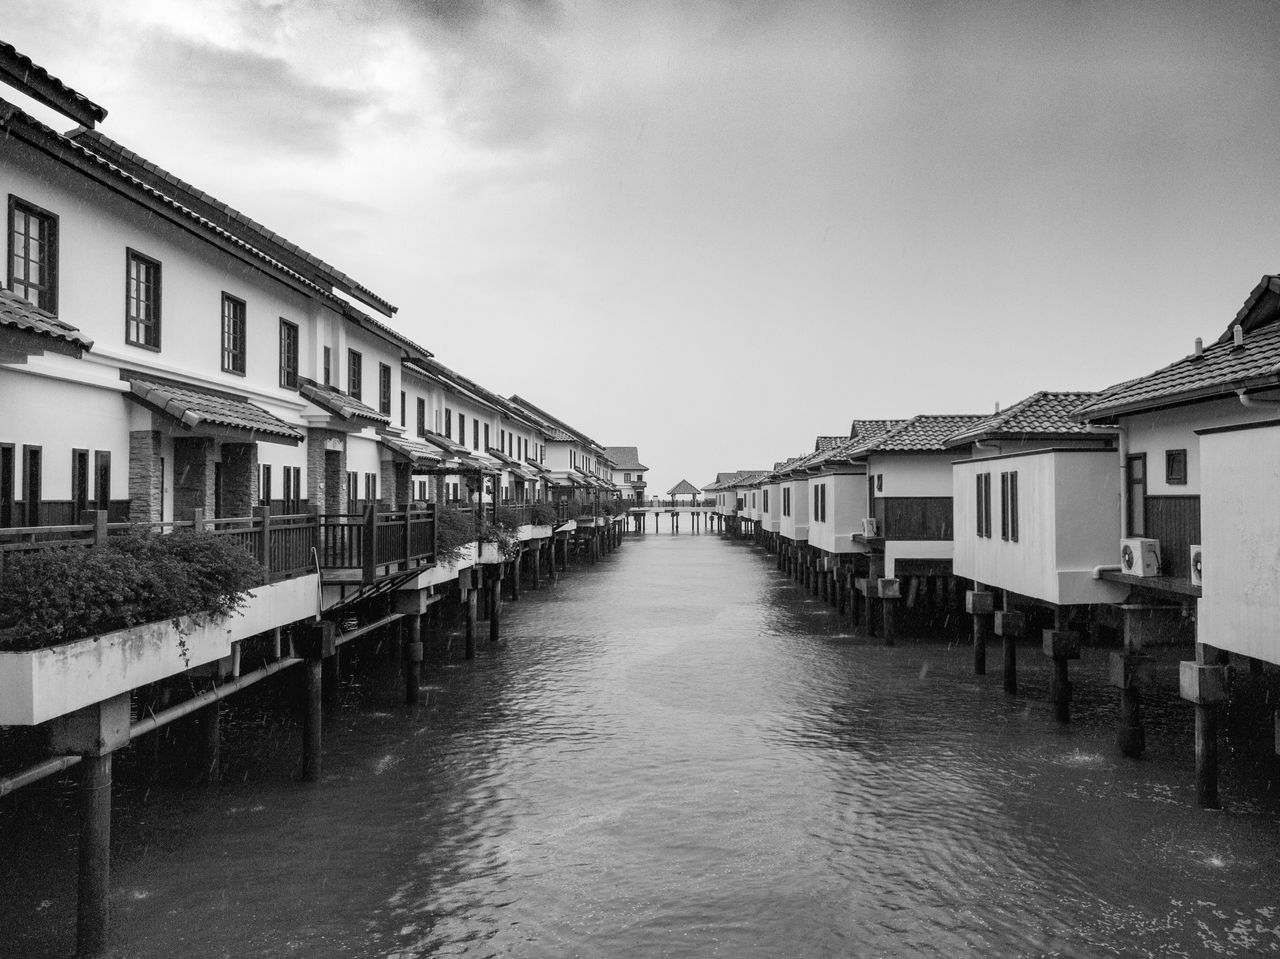 In perspective toward the horizon in black and white Architecture Building Exterior Built Structure Water Waterfront Day Sky Outdoors No People Water Chalet Chalet